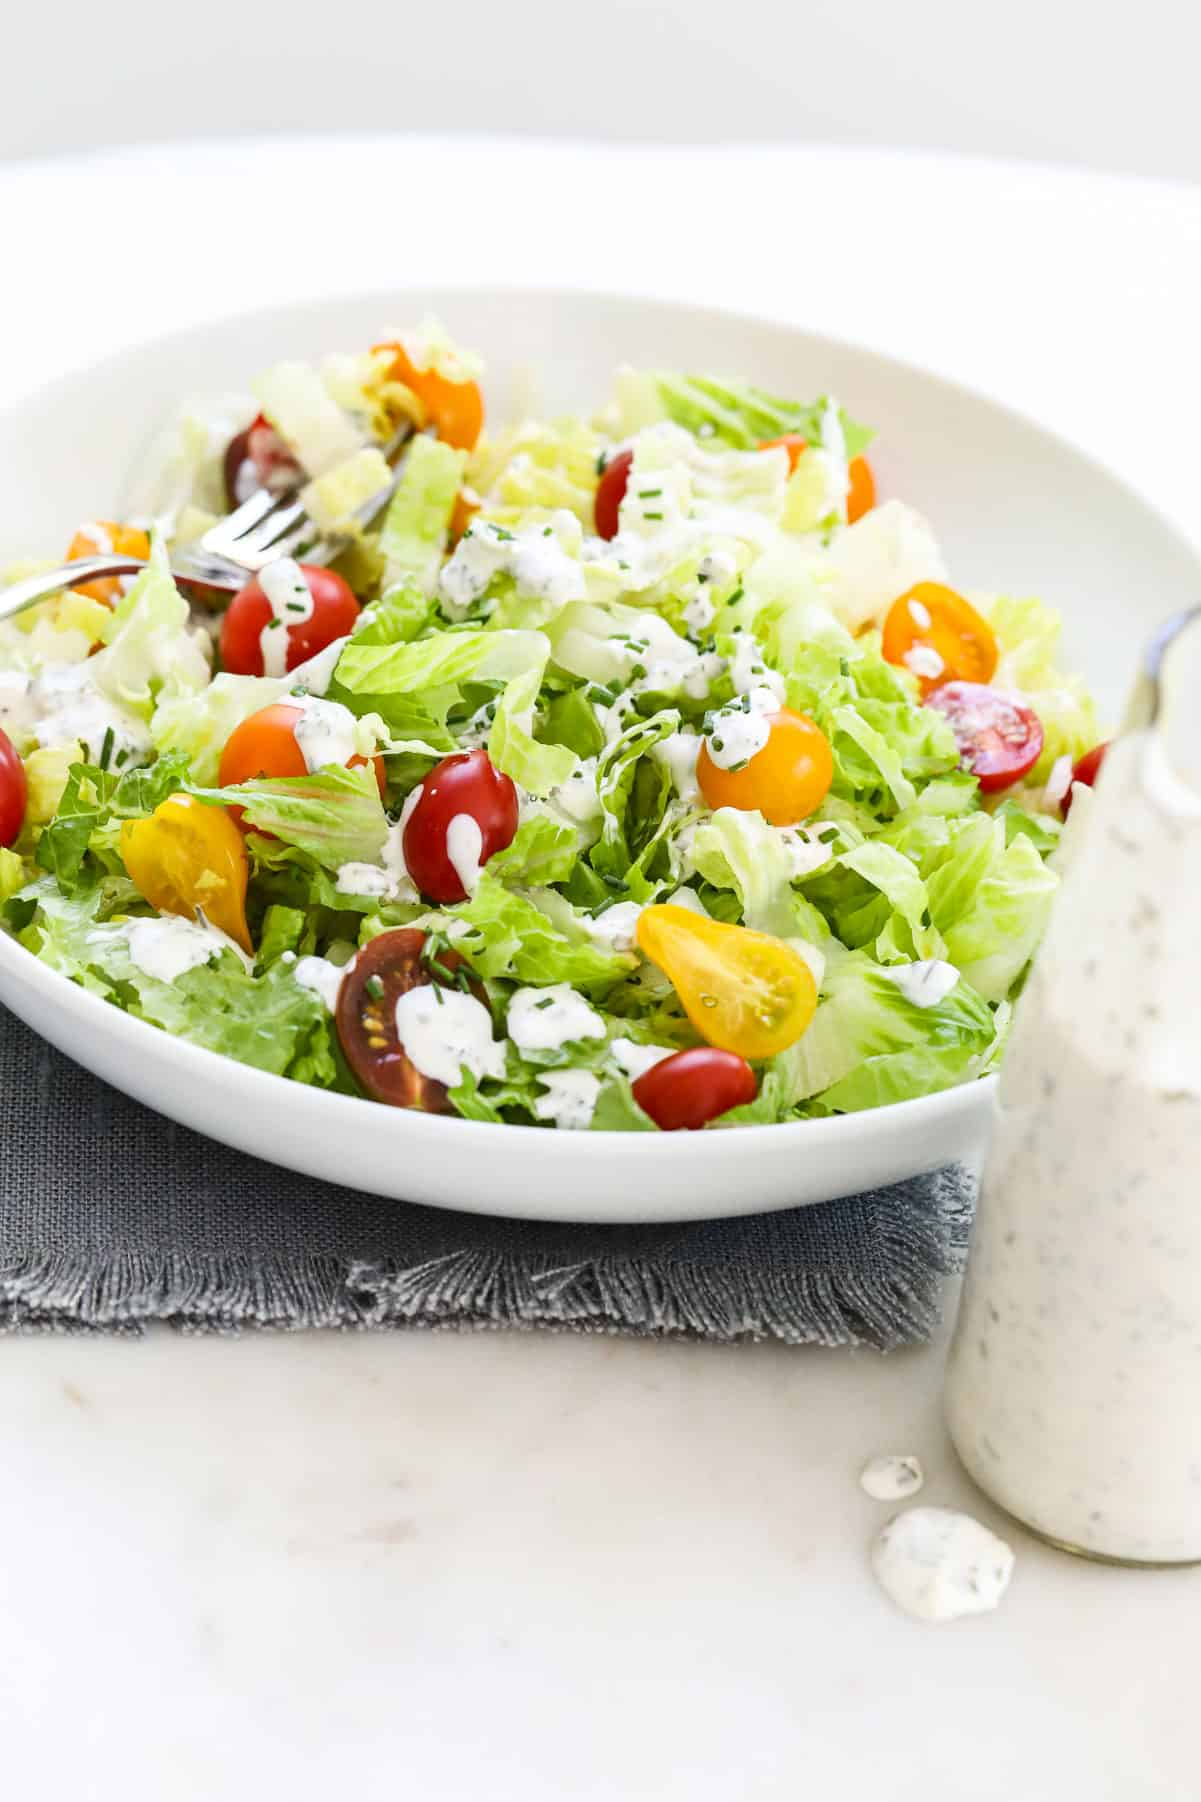 A white round plate filled with colorful green salad topped with ranch dressing.